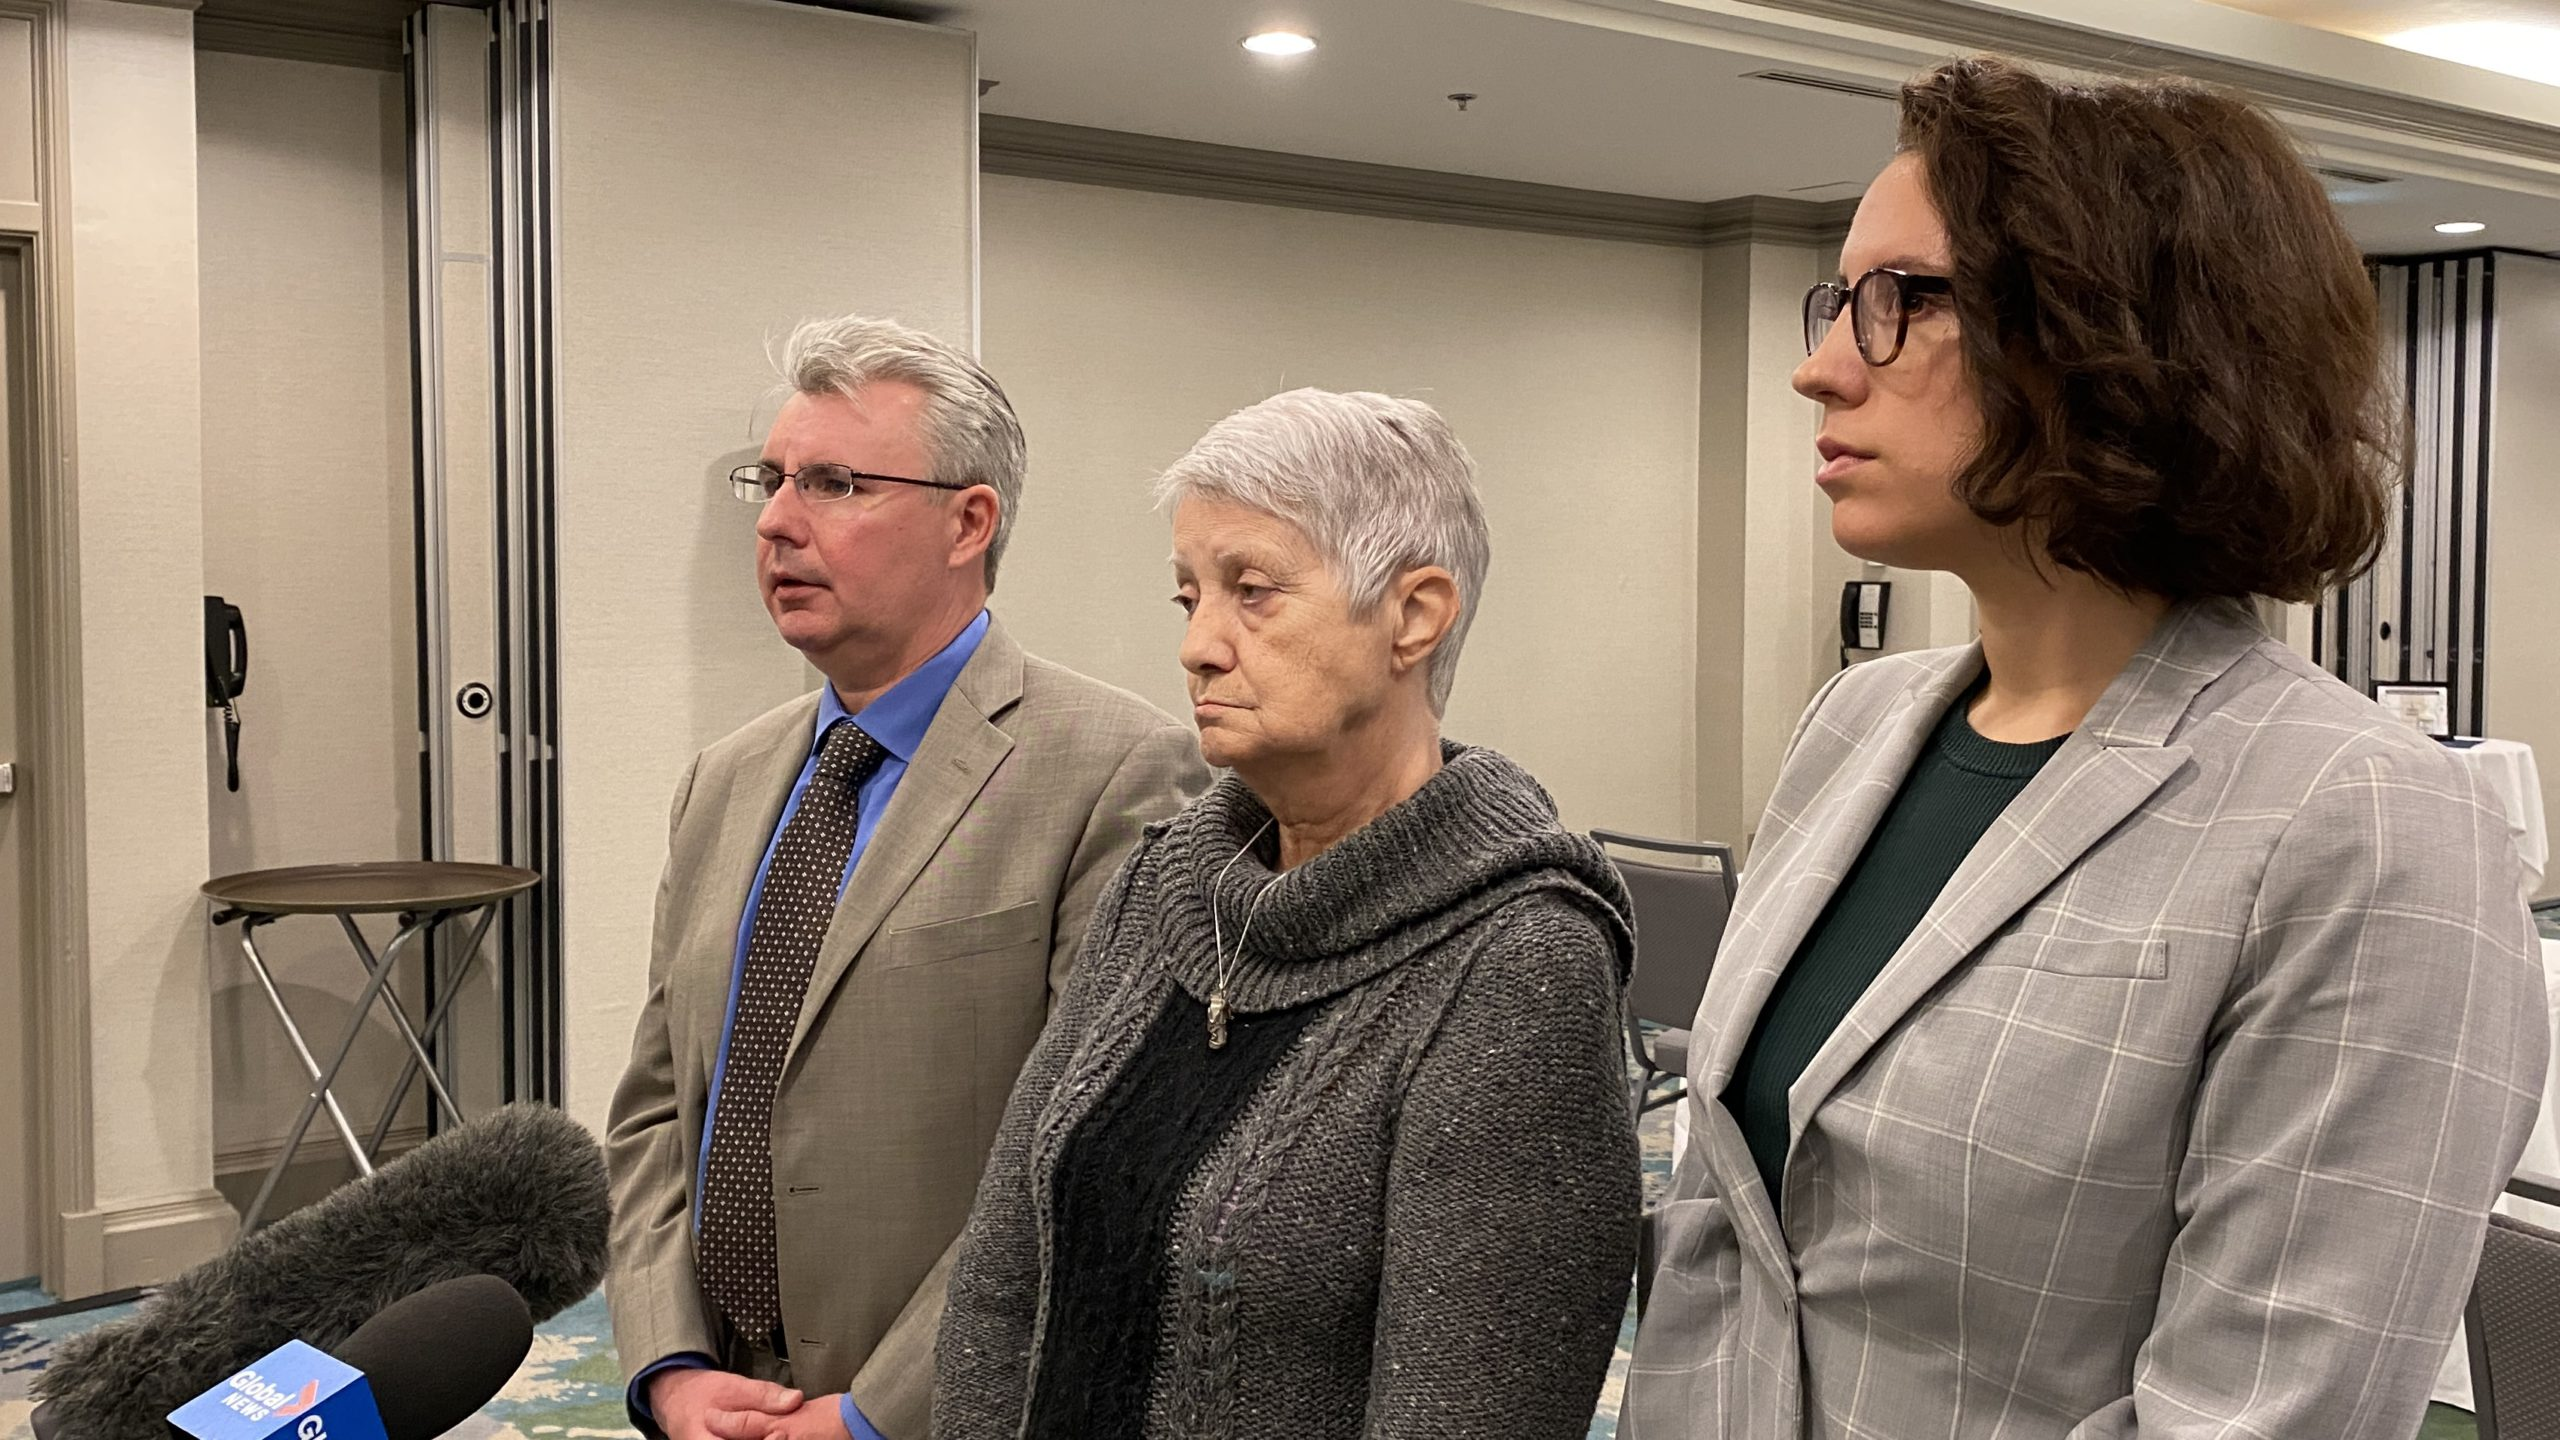 Jeannette Rogers (centre) speaks to media with her lawyers, Jason Cooke and Ashley Hamp-Gonsalves